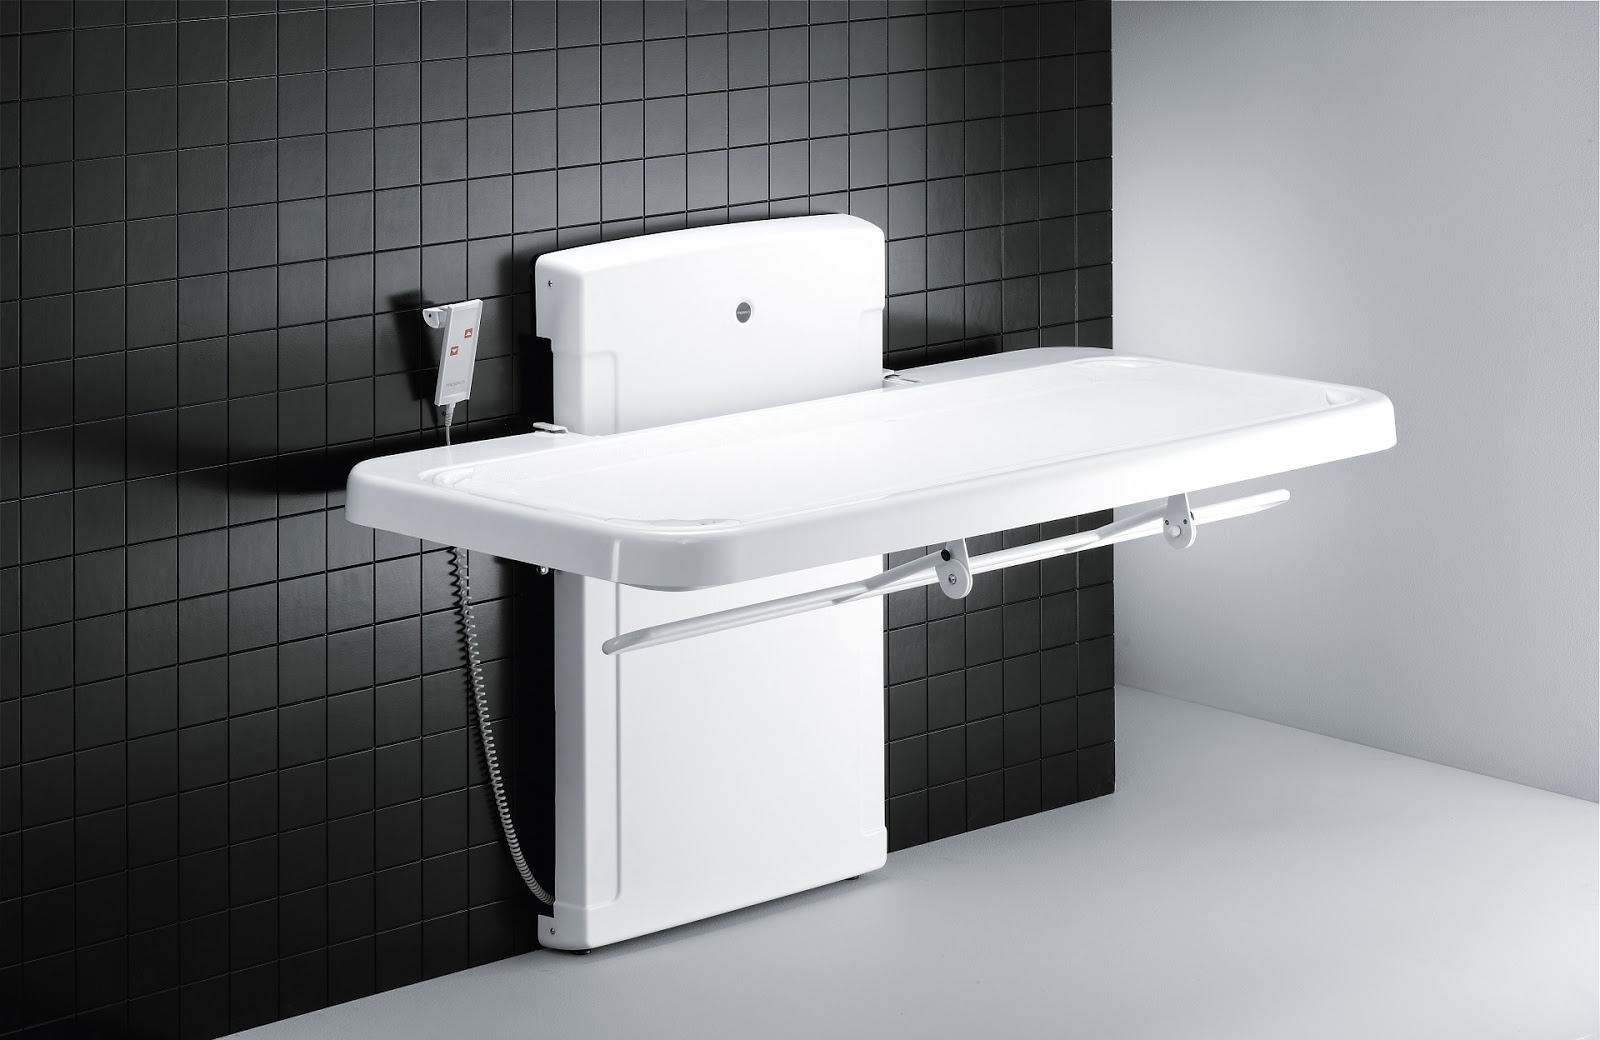 Pressalit 2000 Bench with Safety Rail Folded Down